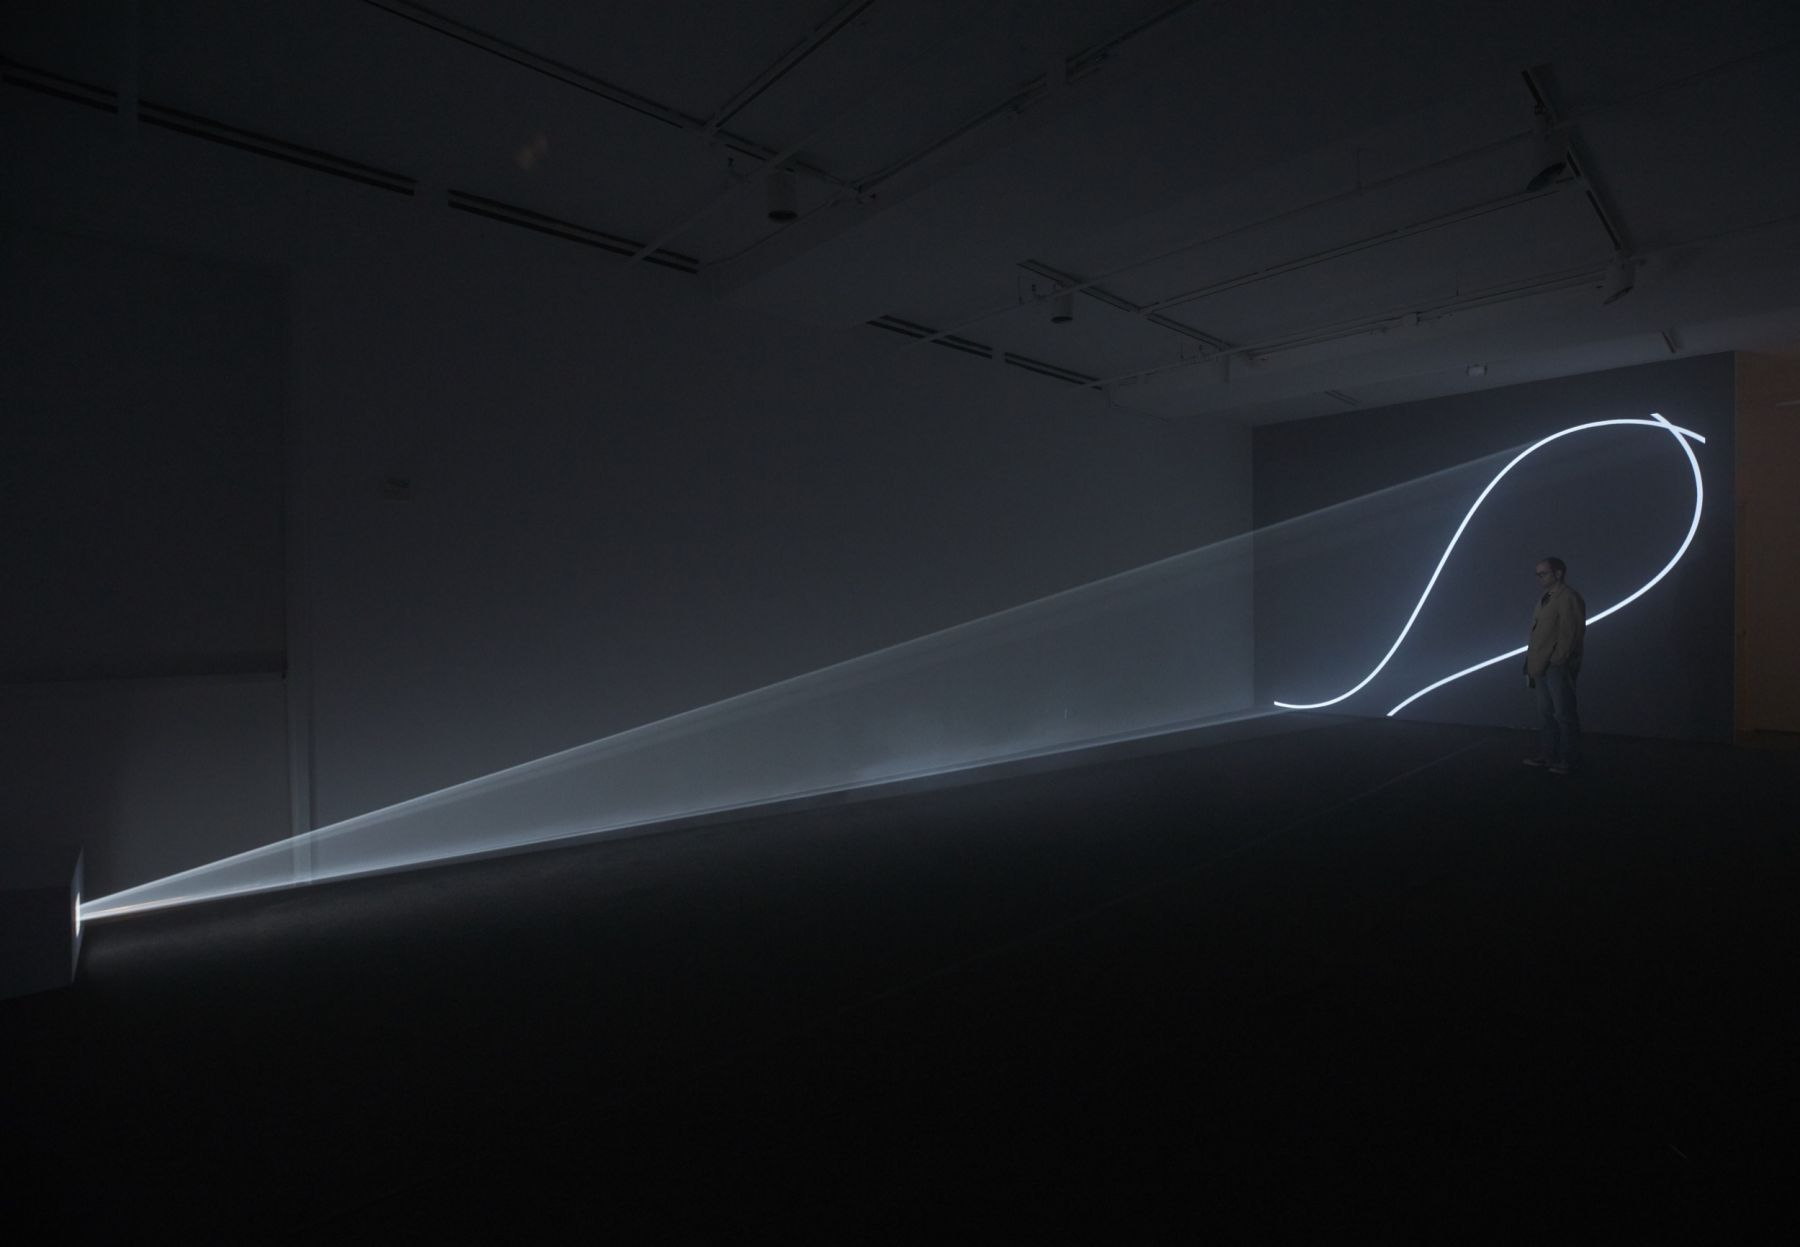 Installation view of Anthony McCall: Split Second at Sean Kelly, New York